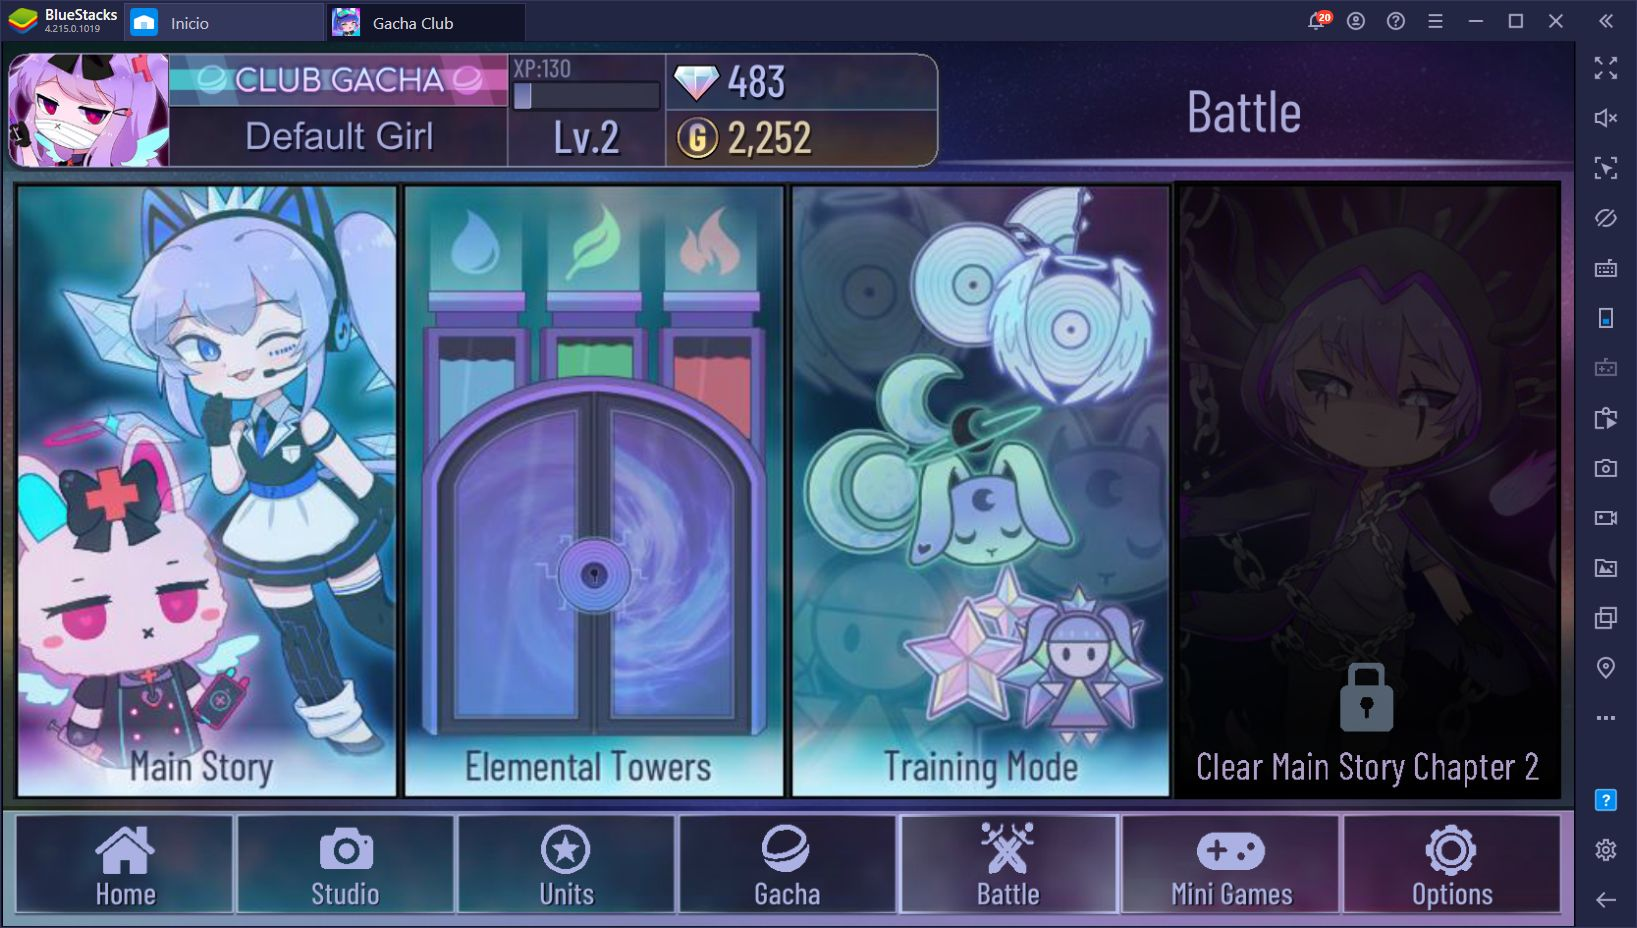 Gacha Club - Tips and Tricks for Farming and Combat